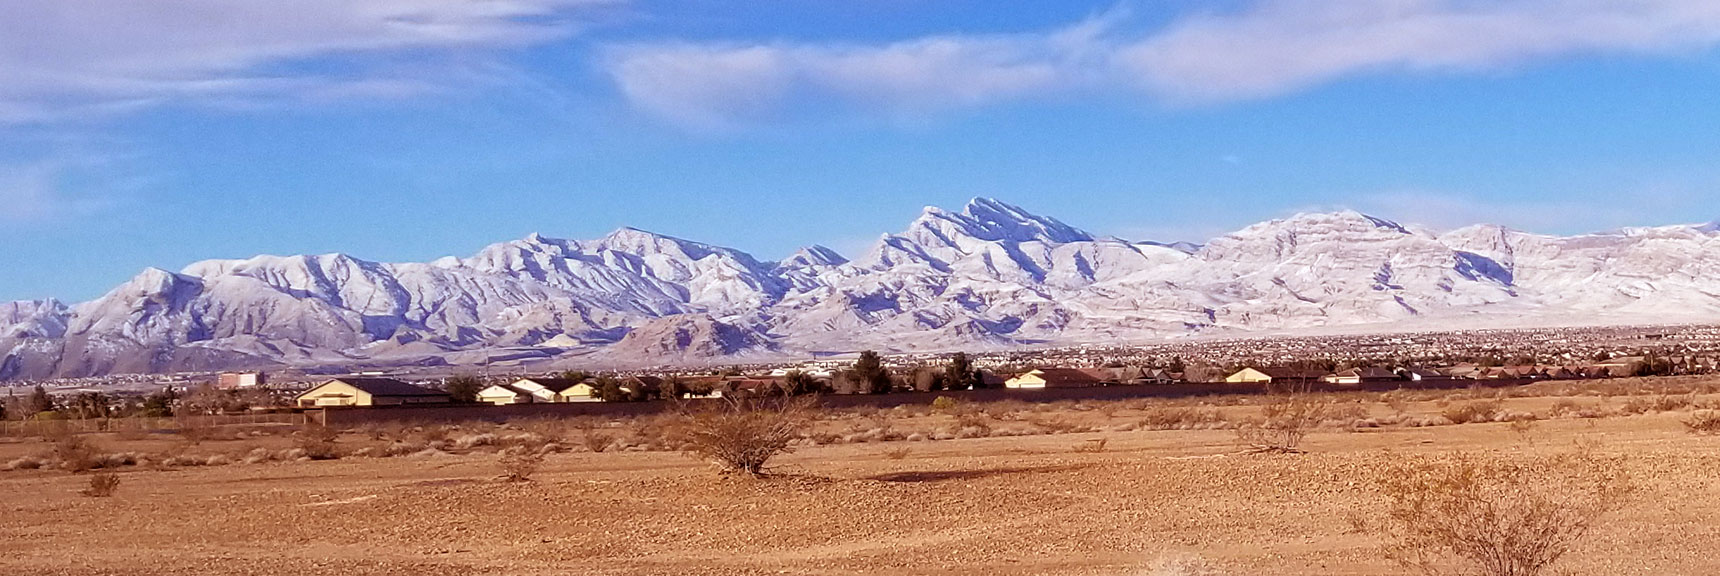 La Madre Mountain Wilderness from South of Gass Peak, Nevada After Snowfall